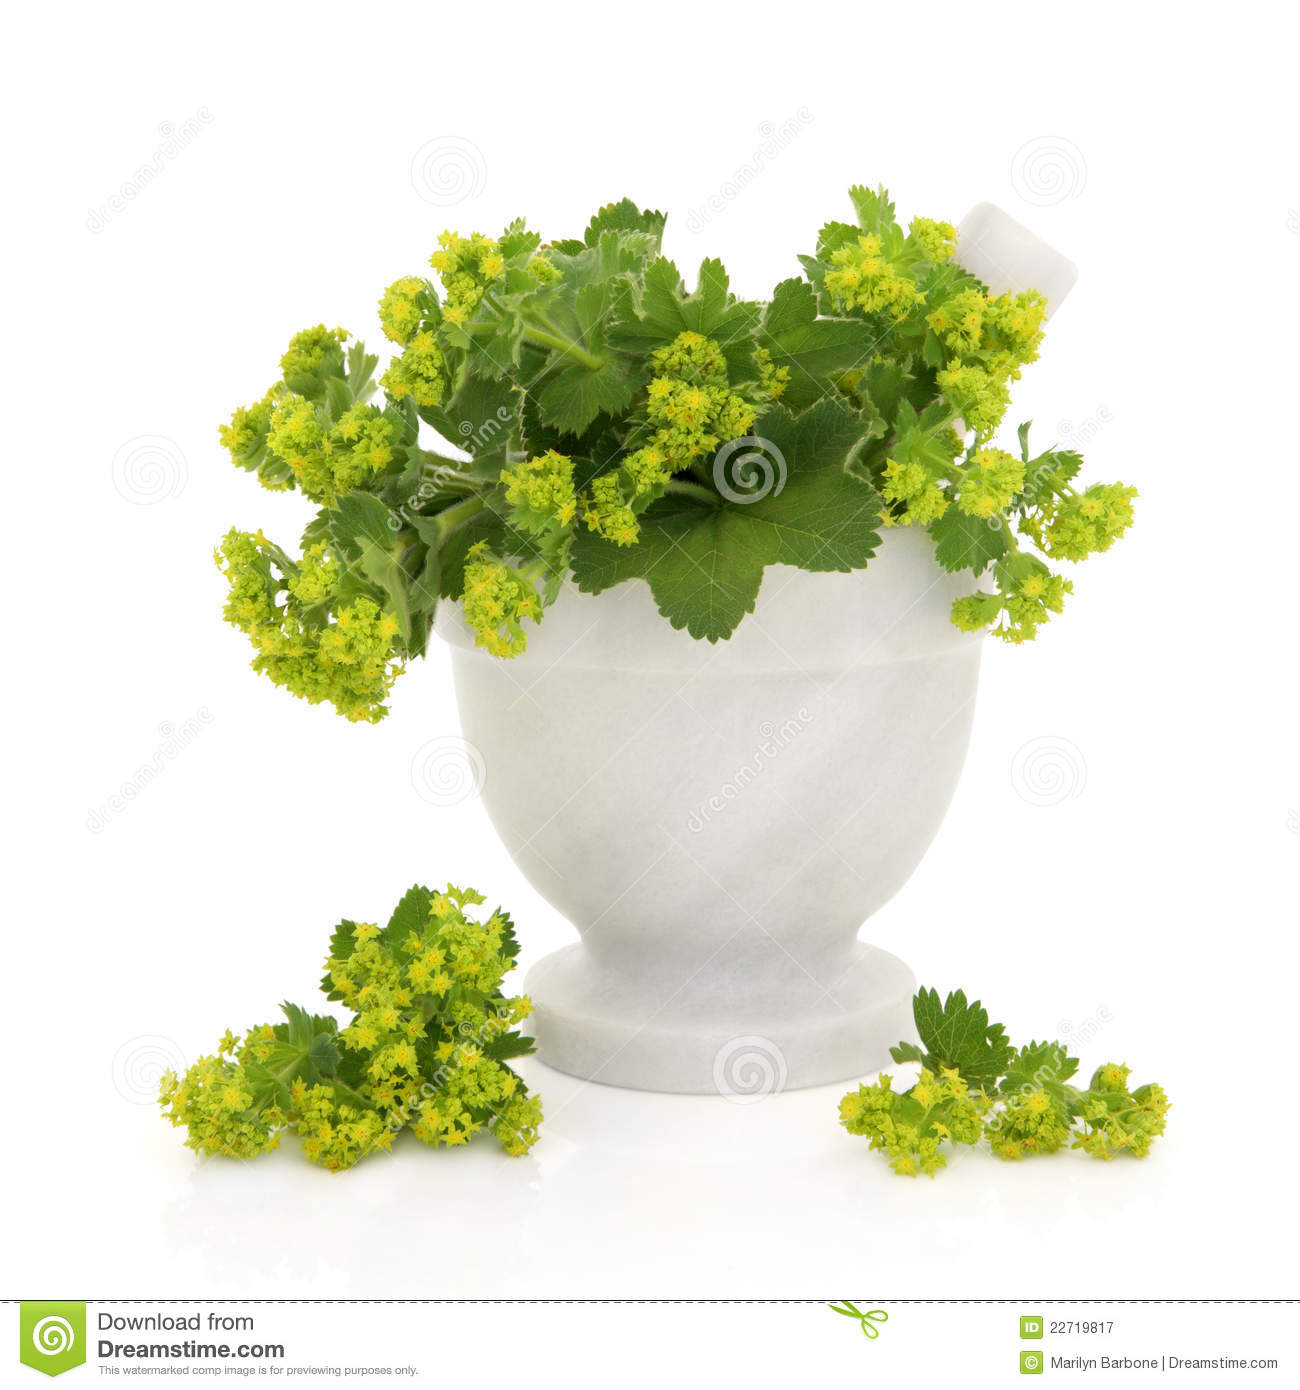 Ladies mantle herb flower sprigs in a marble mortar with pestle with